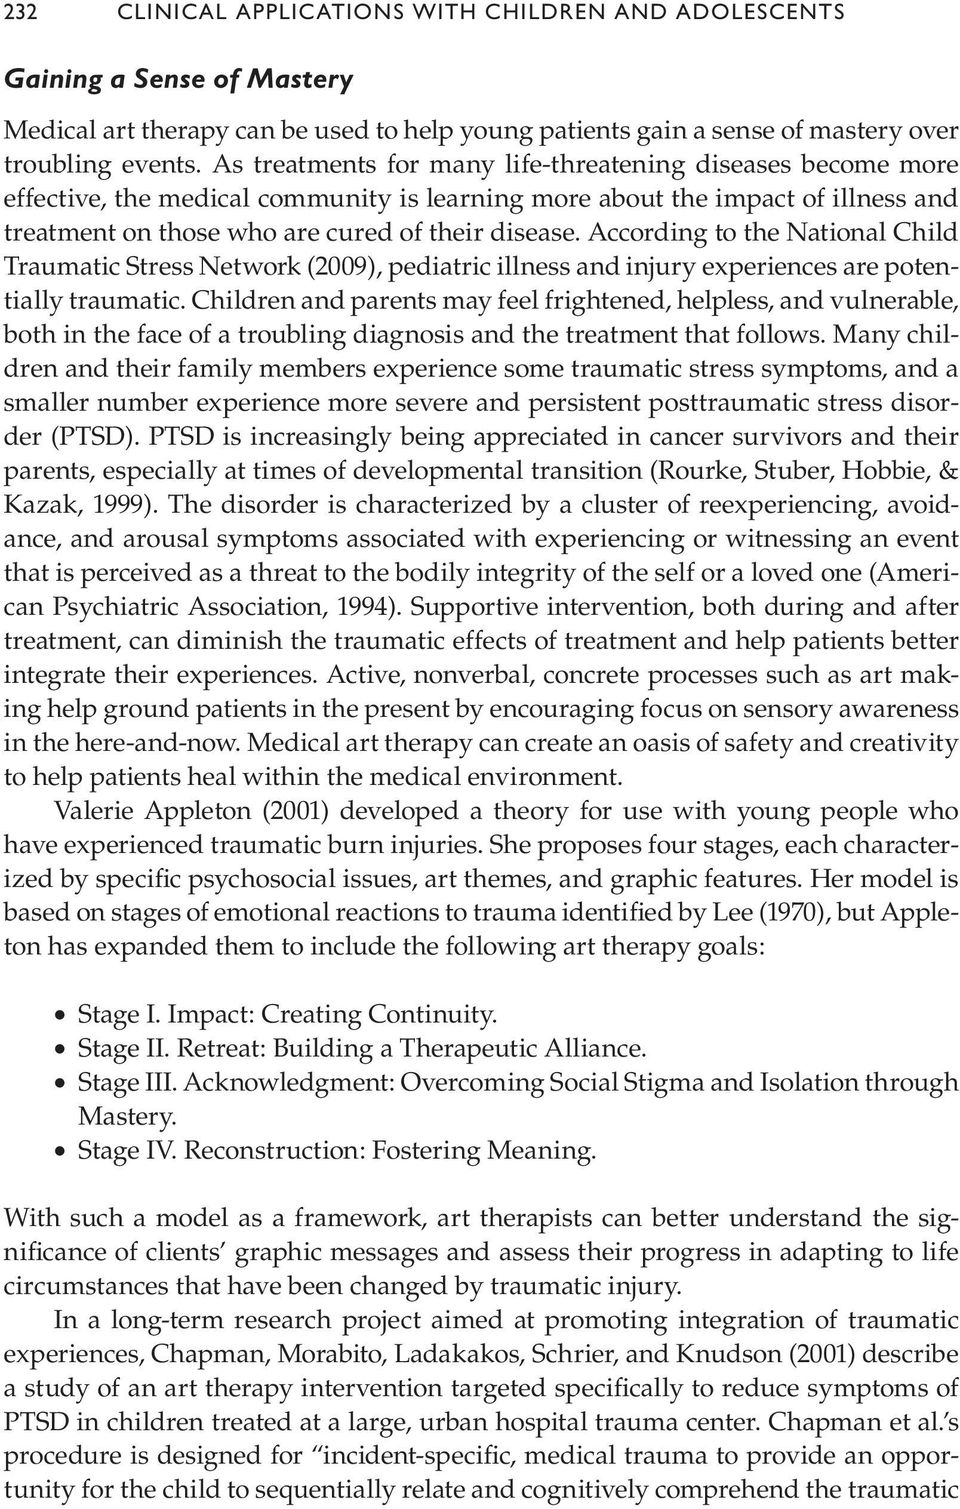 According to the National Child Traumatic Stress Network (2009), pediatric illness and injury experiences are potentially traumatic.